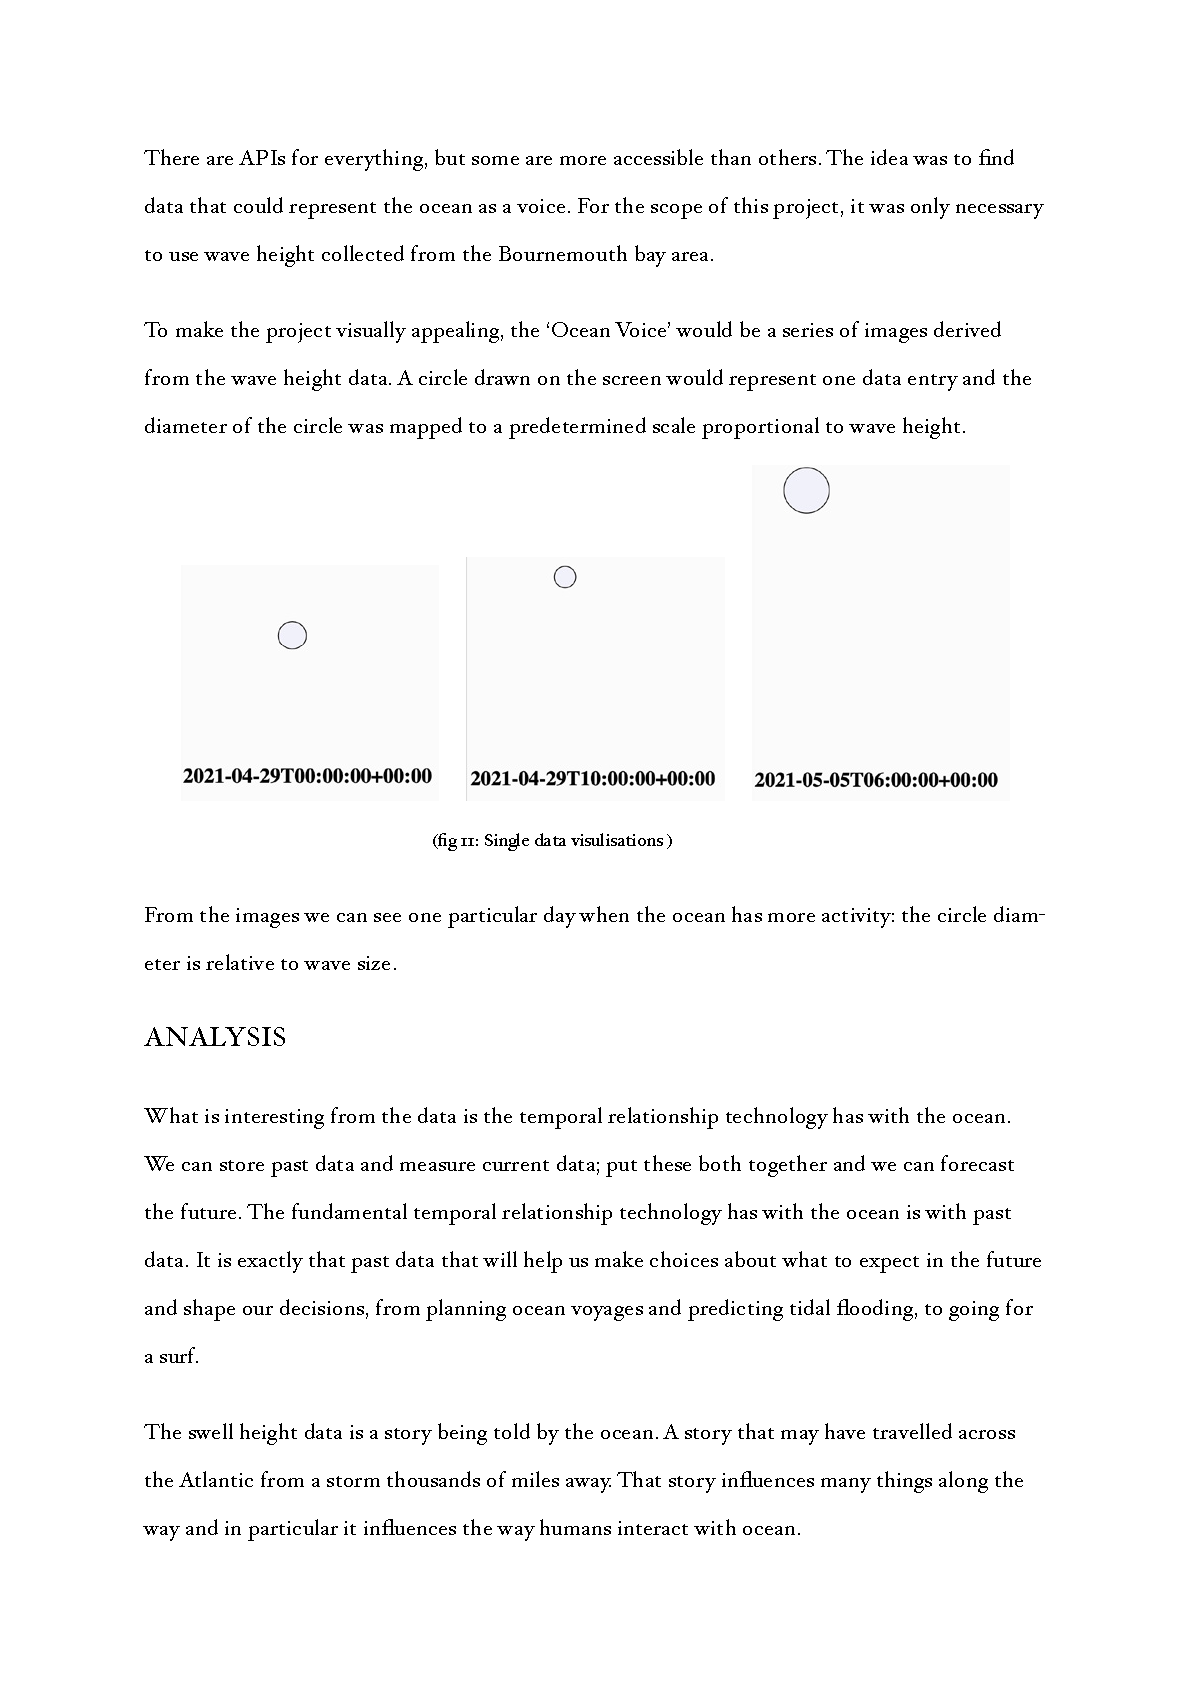 Research prj2_final_images_v2_Page_15